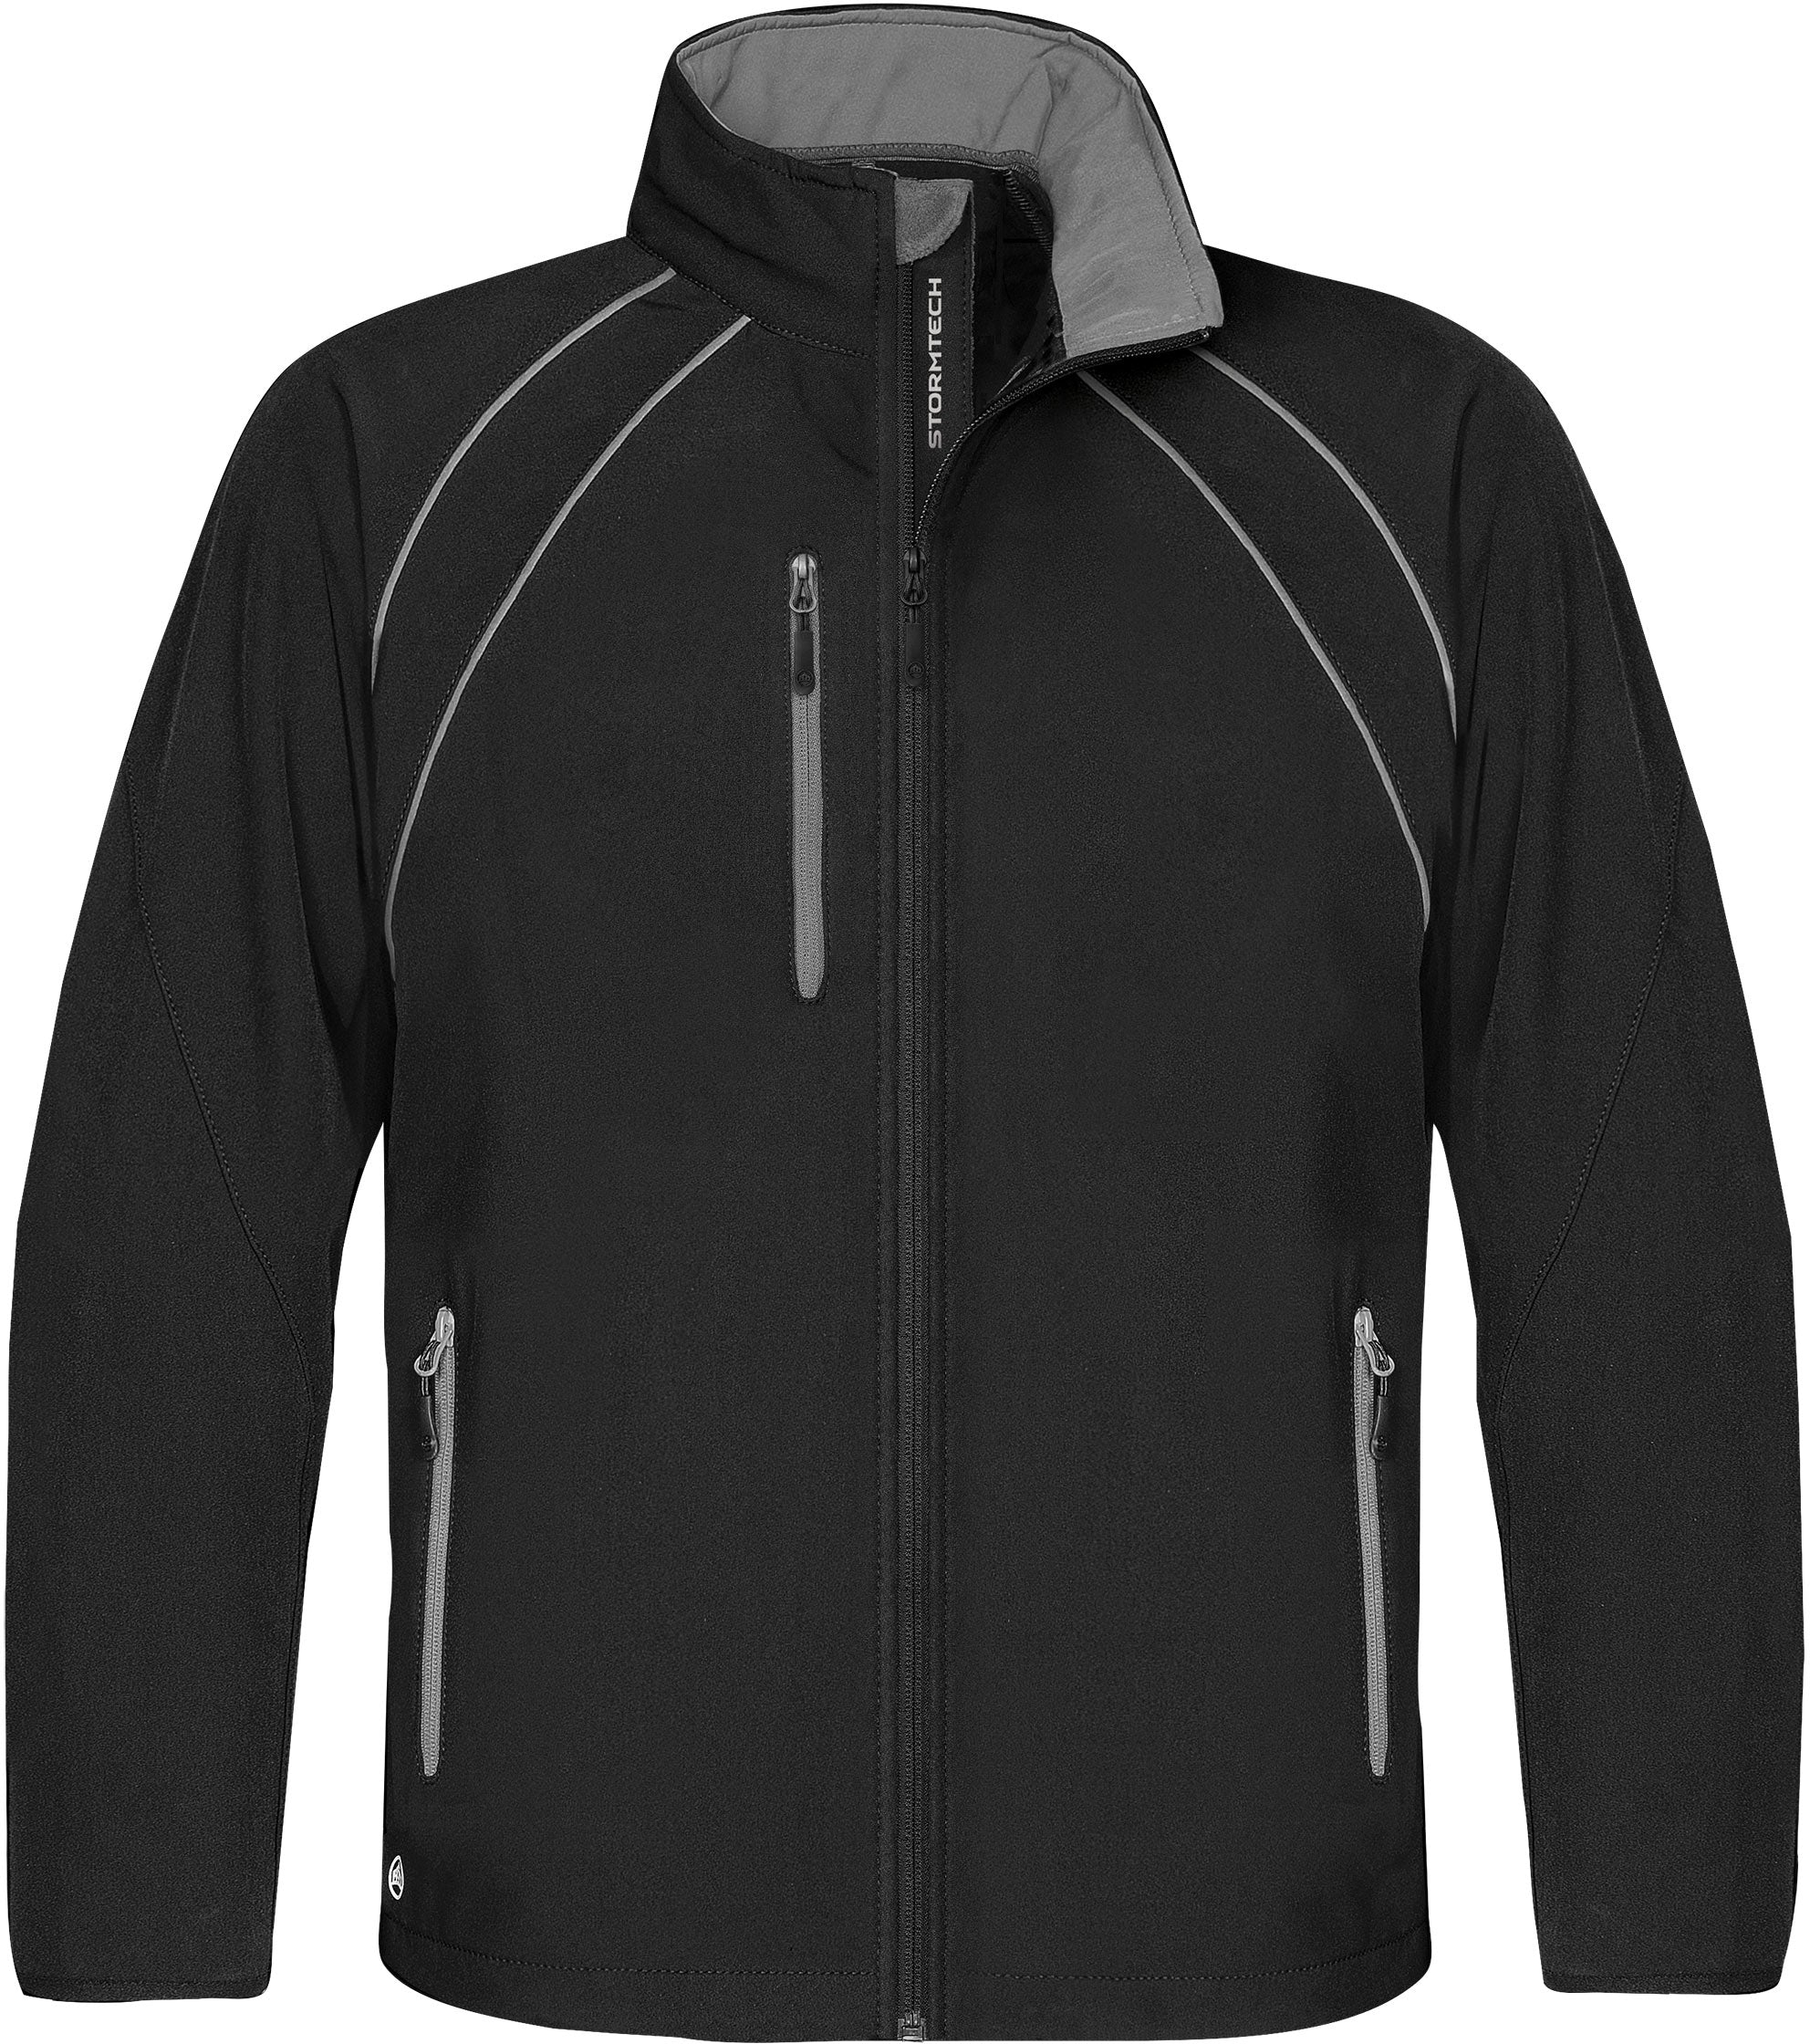 STORMTECH MEN'S CREW SOFT SHELL JACKET